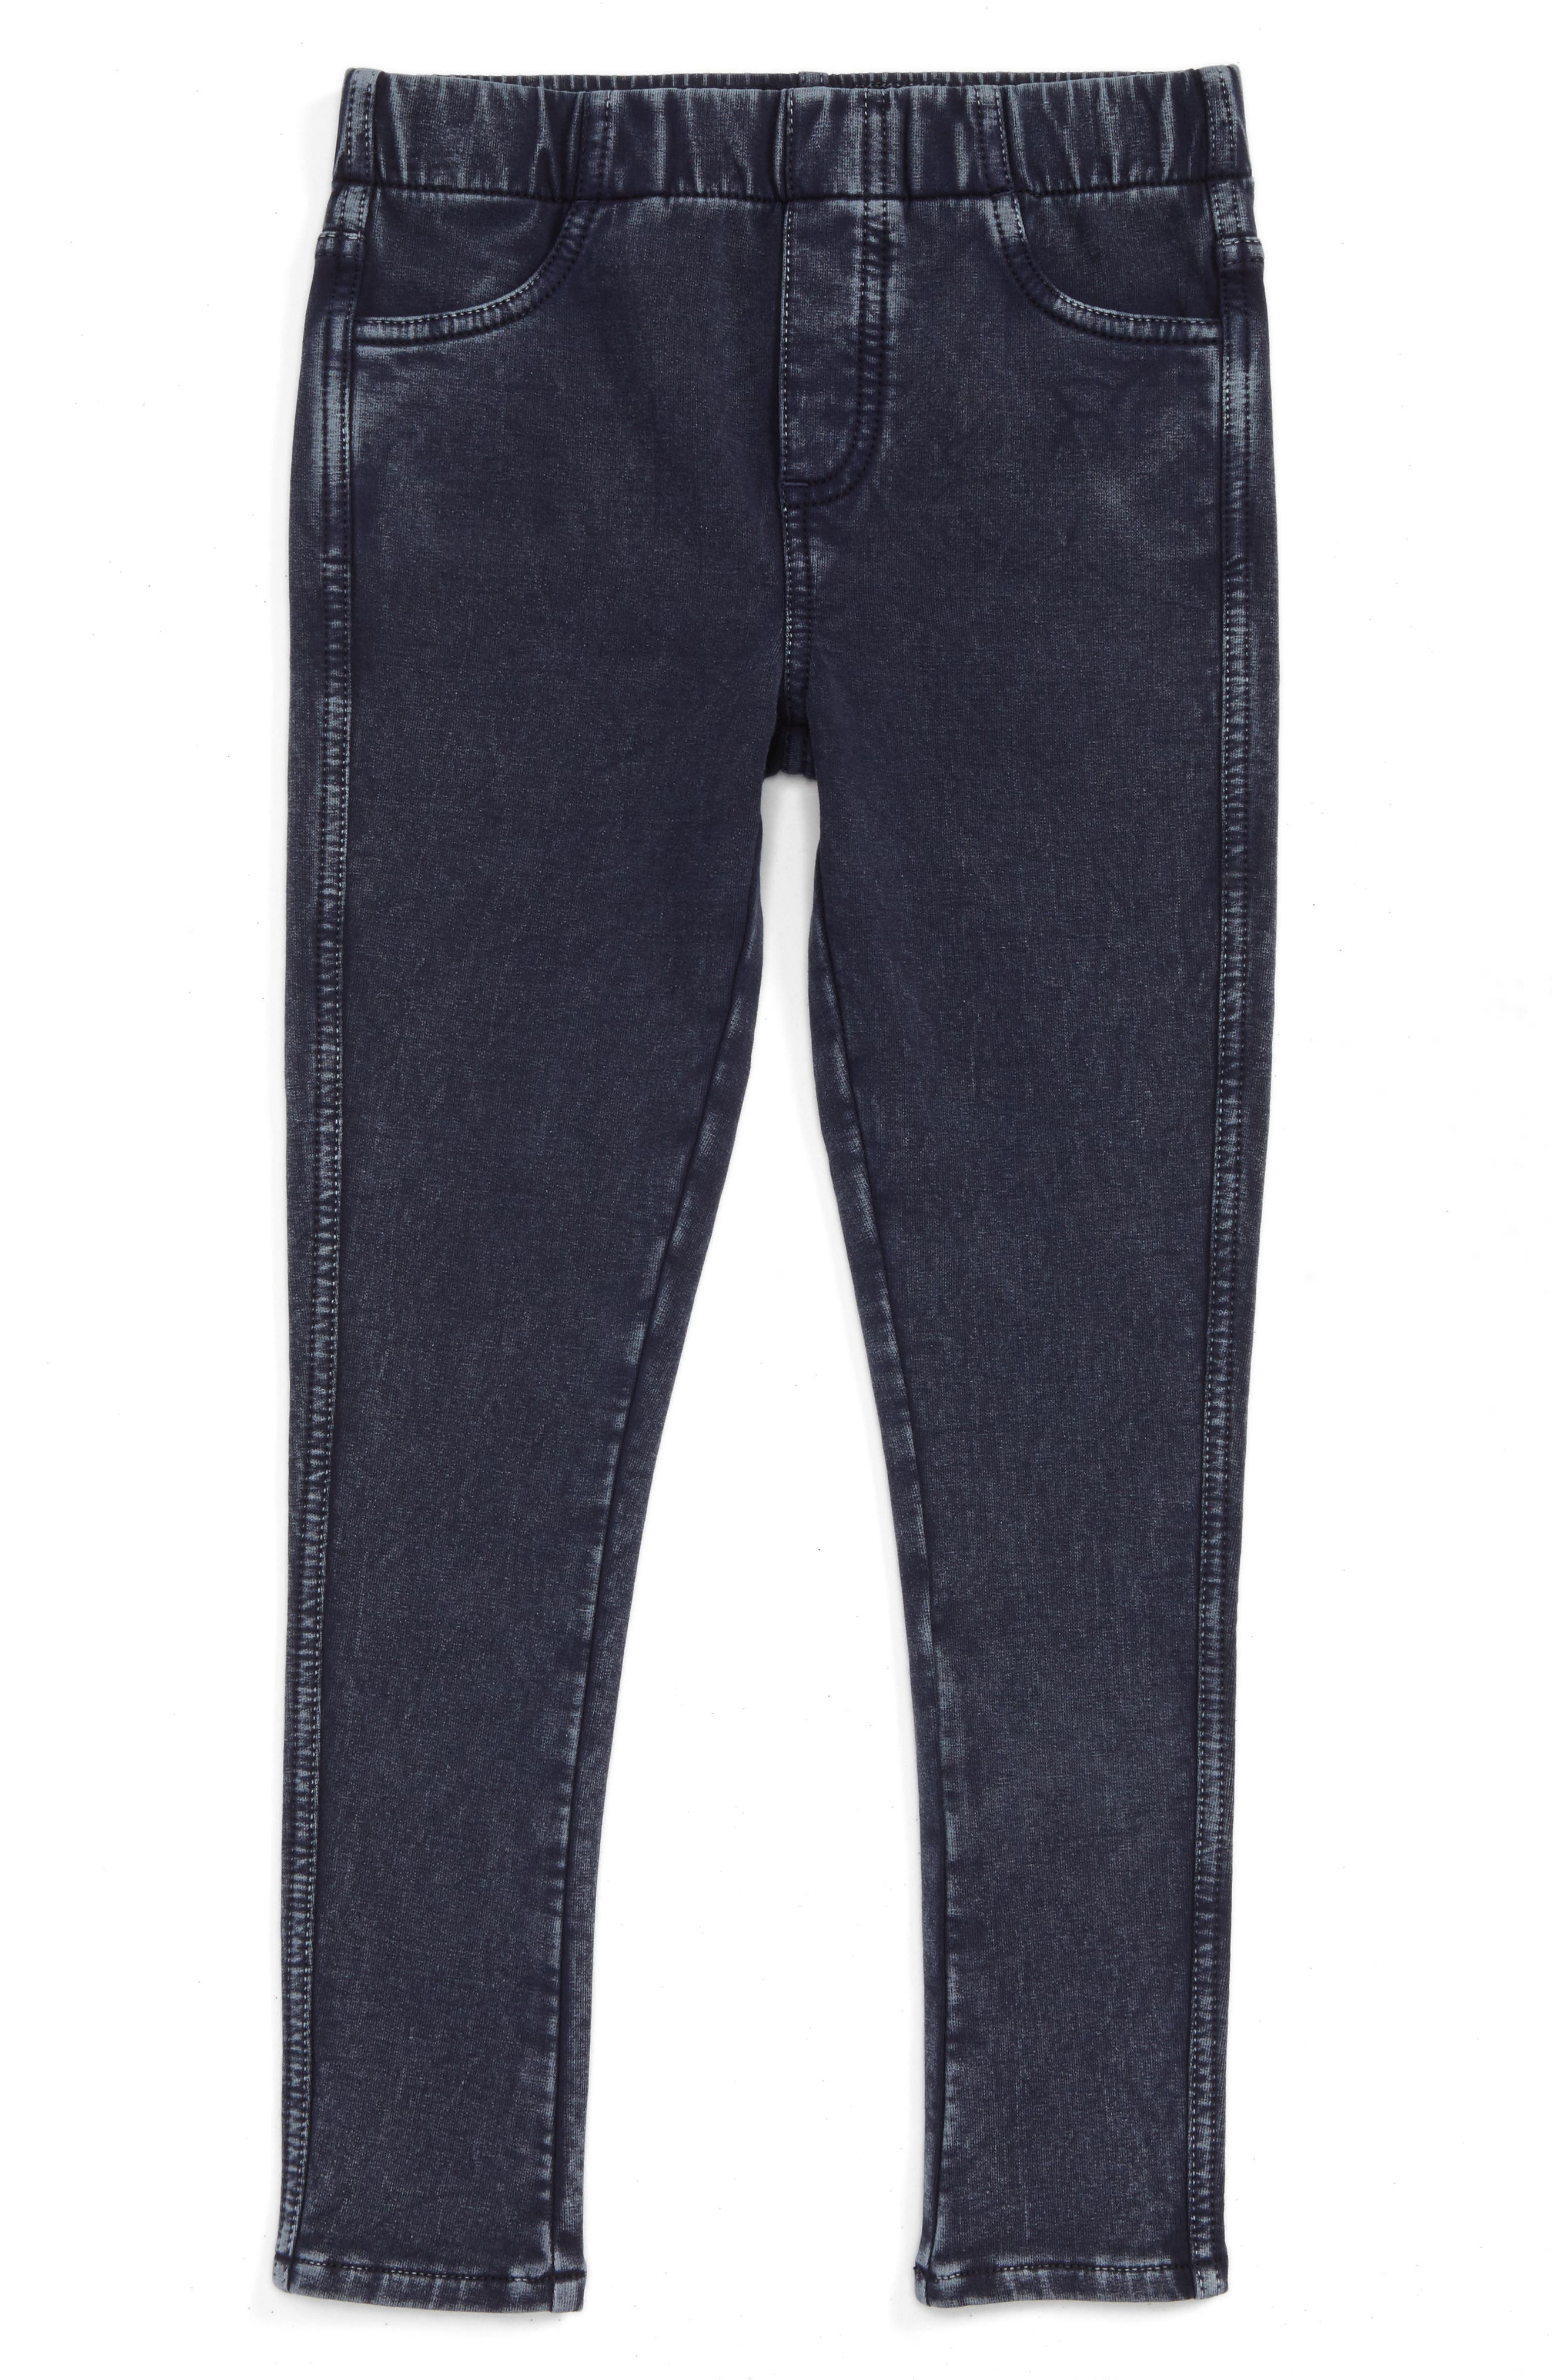 'Sadie' Jeggings,                             Main thumbnail 1, color,                             DARK INDIGO WASH